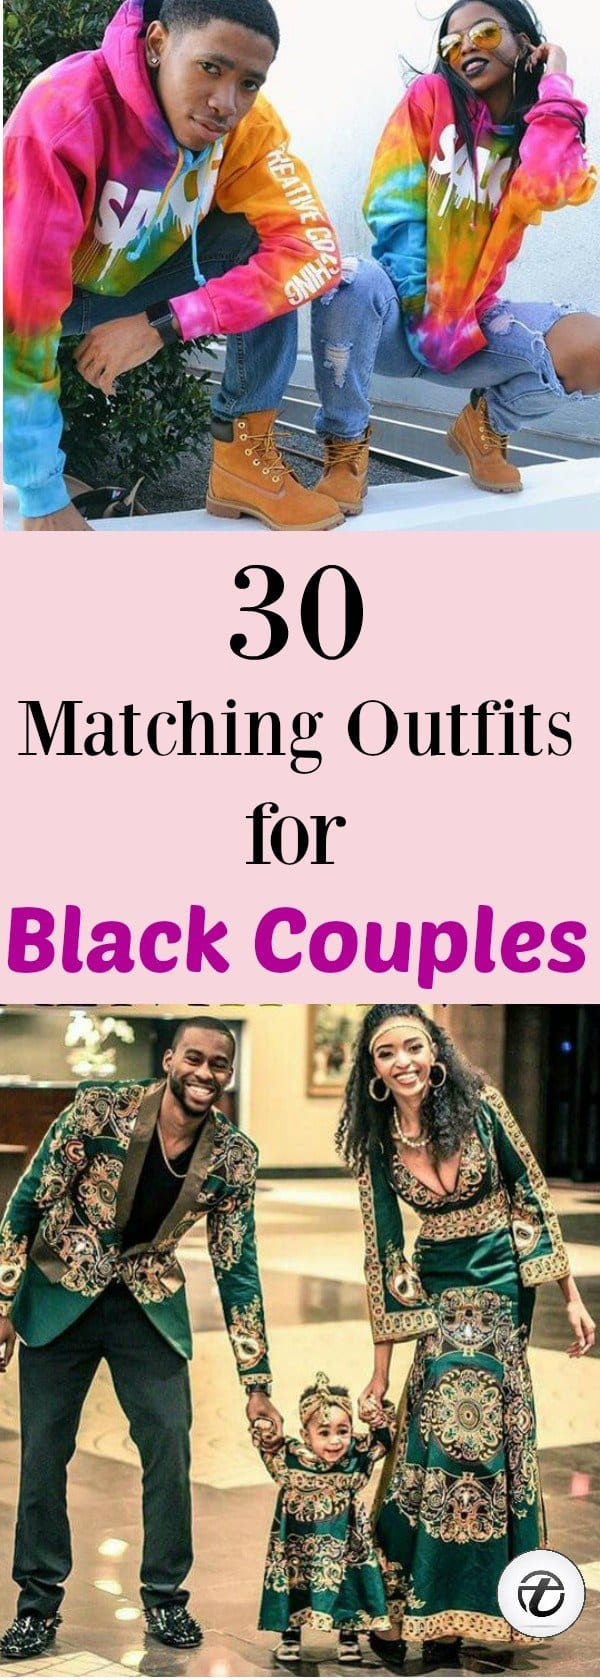 matching-outfits 30 Cutest Matching Outfits for Black Couples